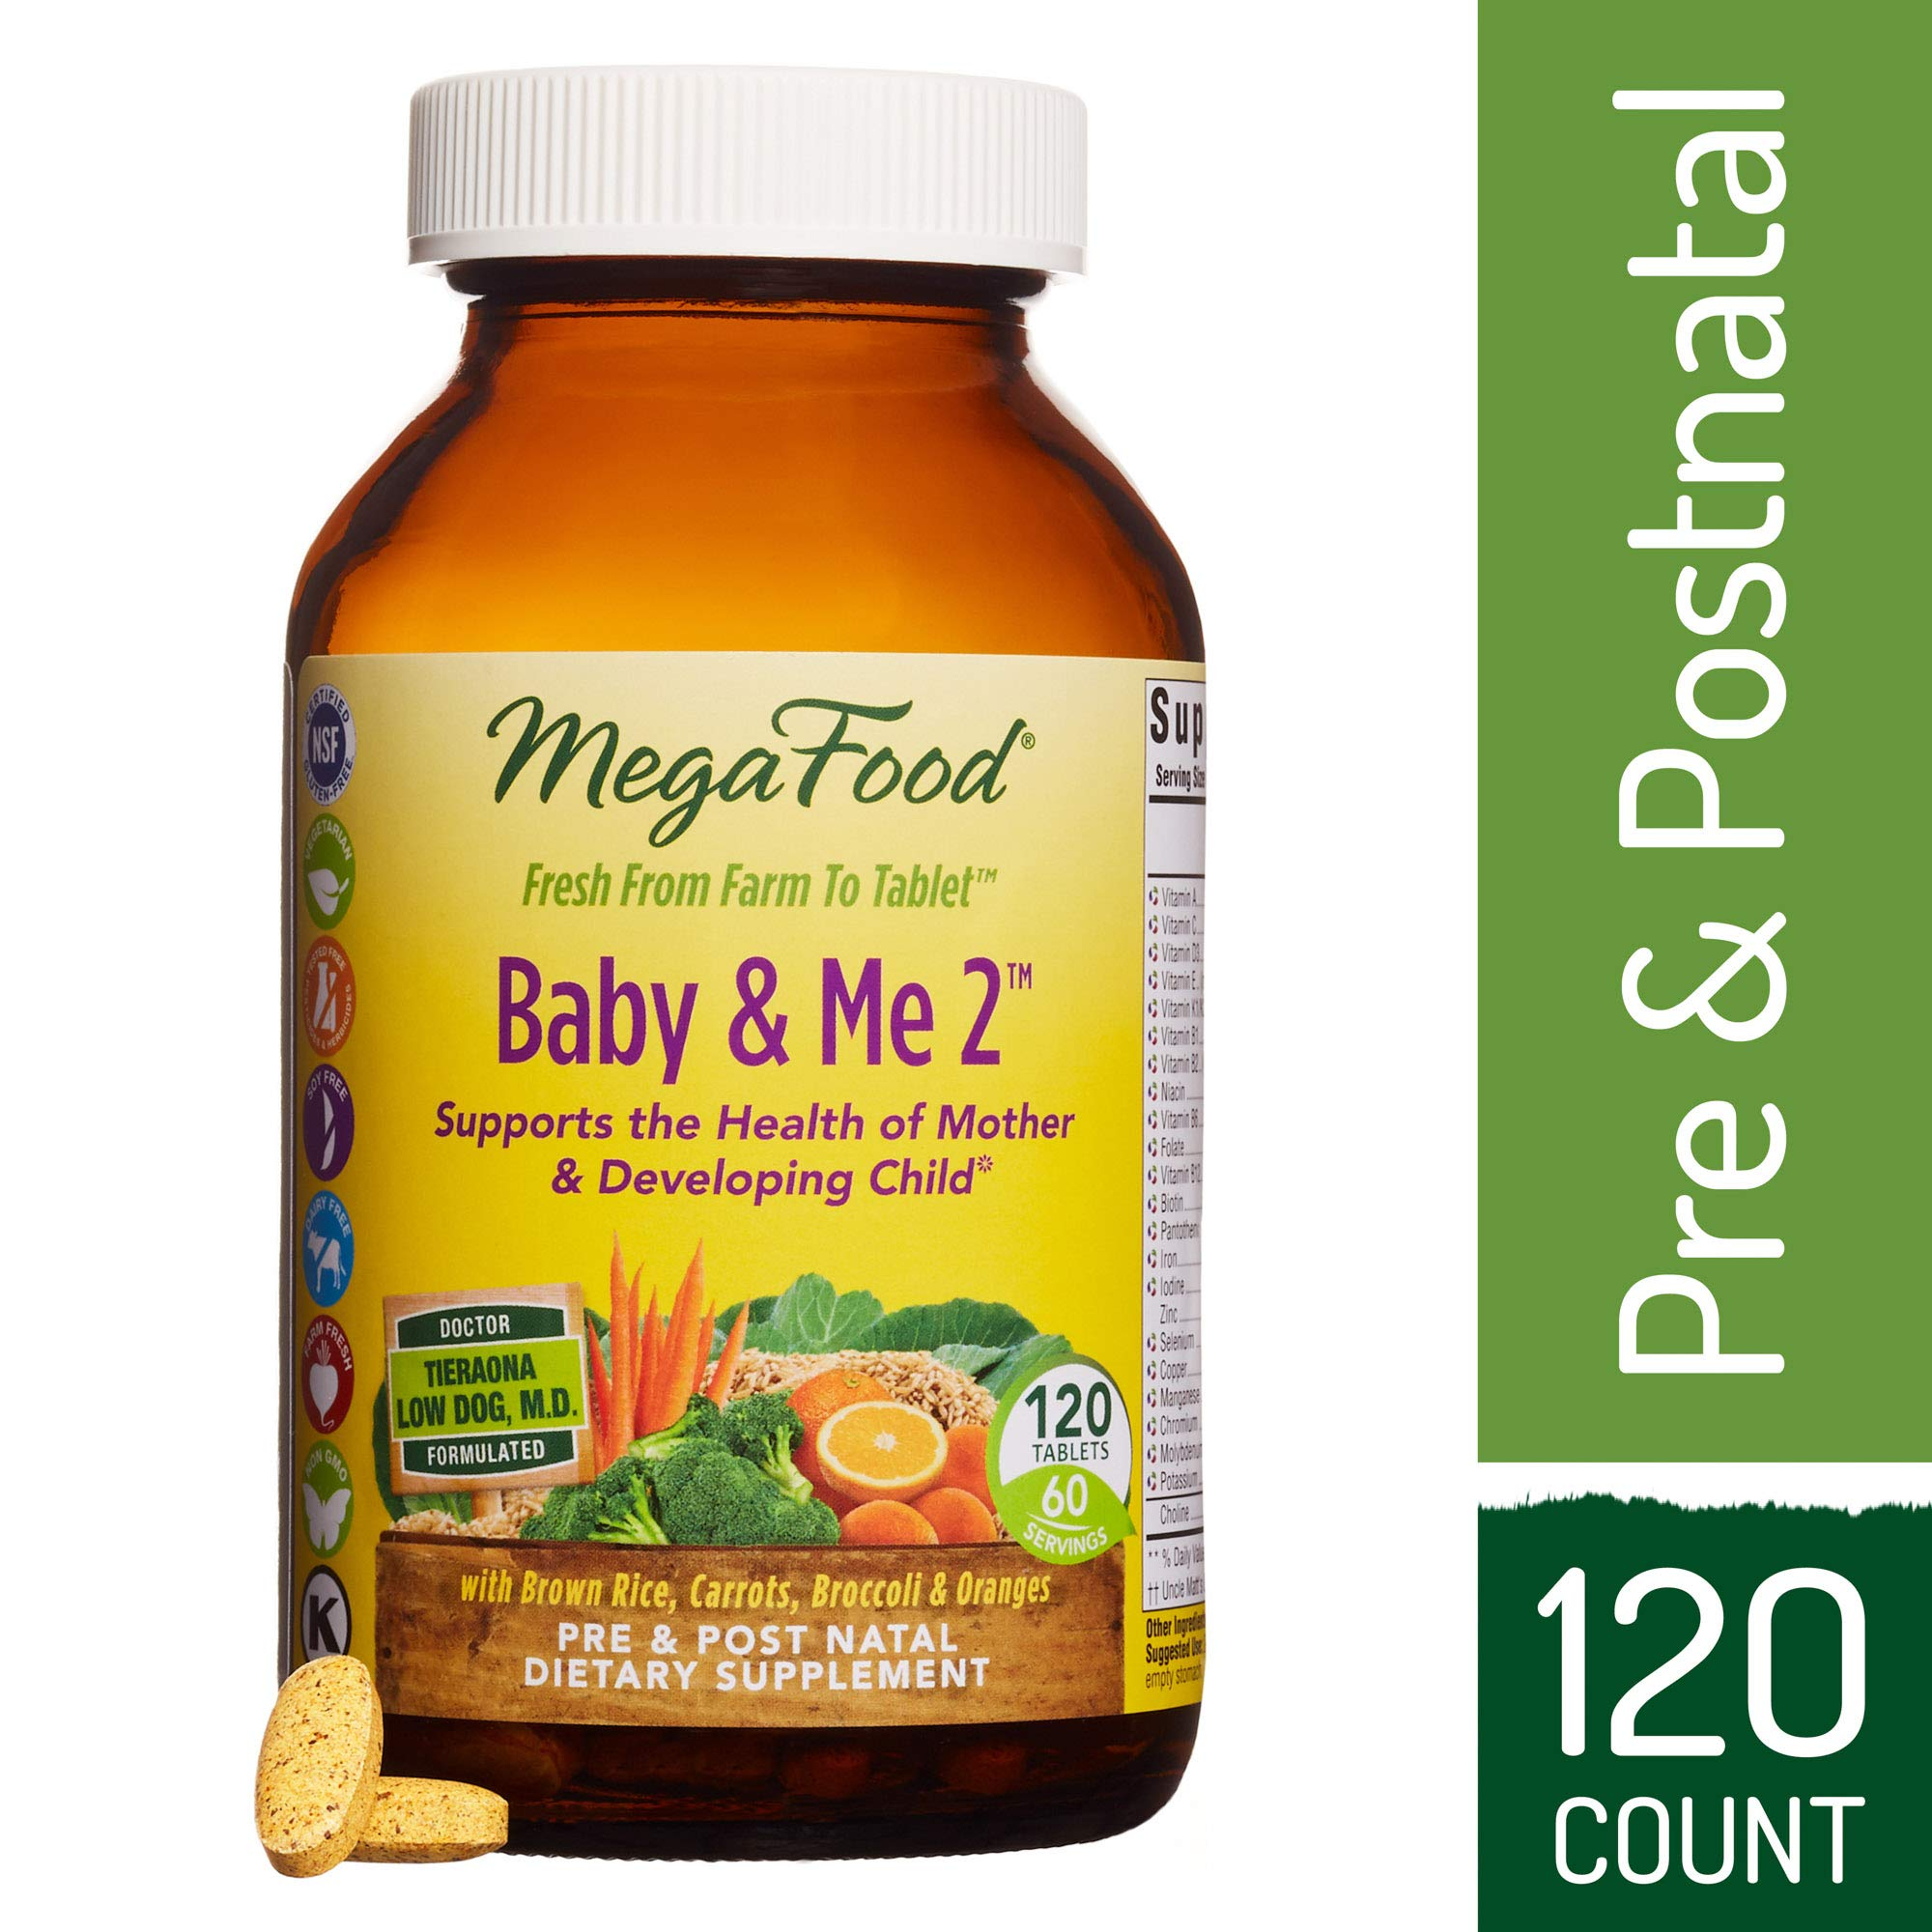 MegaFood - Baby & Me 2, Twice Daily Prenatal and Postnatal Supplement to Support Healthy Pregnancy, Development, and Bones for Mother and Child, Herb-Free, Vegetarian, Gluten-Free, Non-GMO 120 Tablets